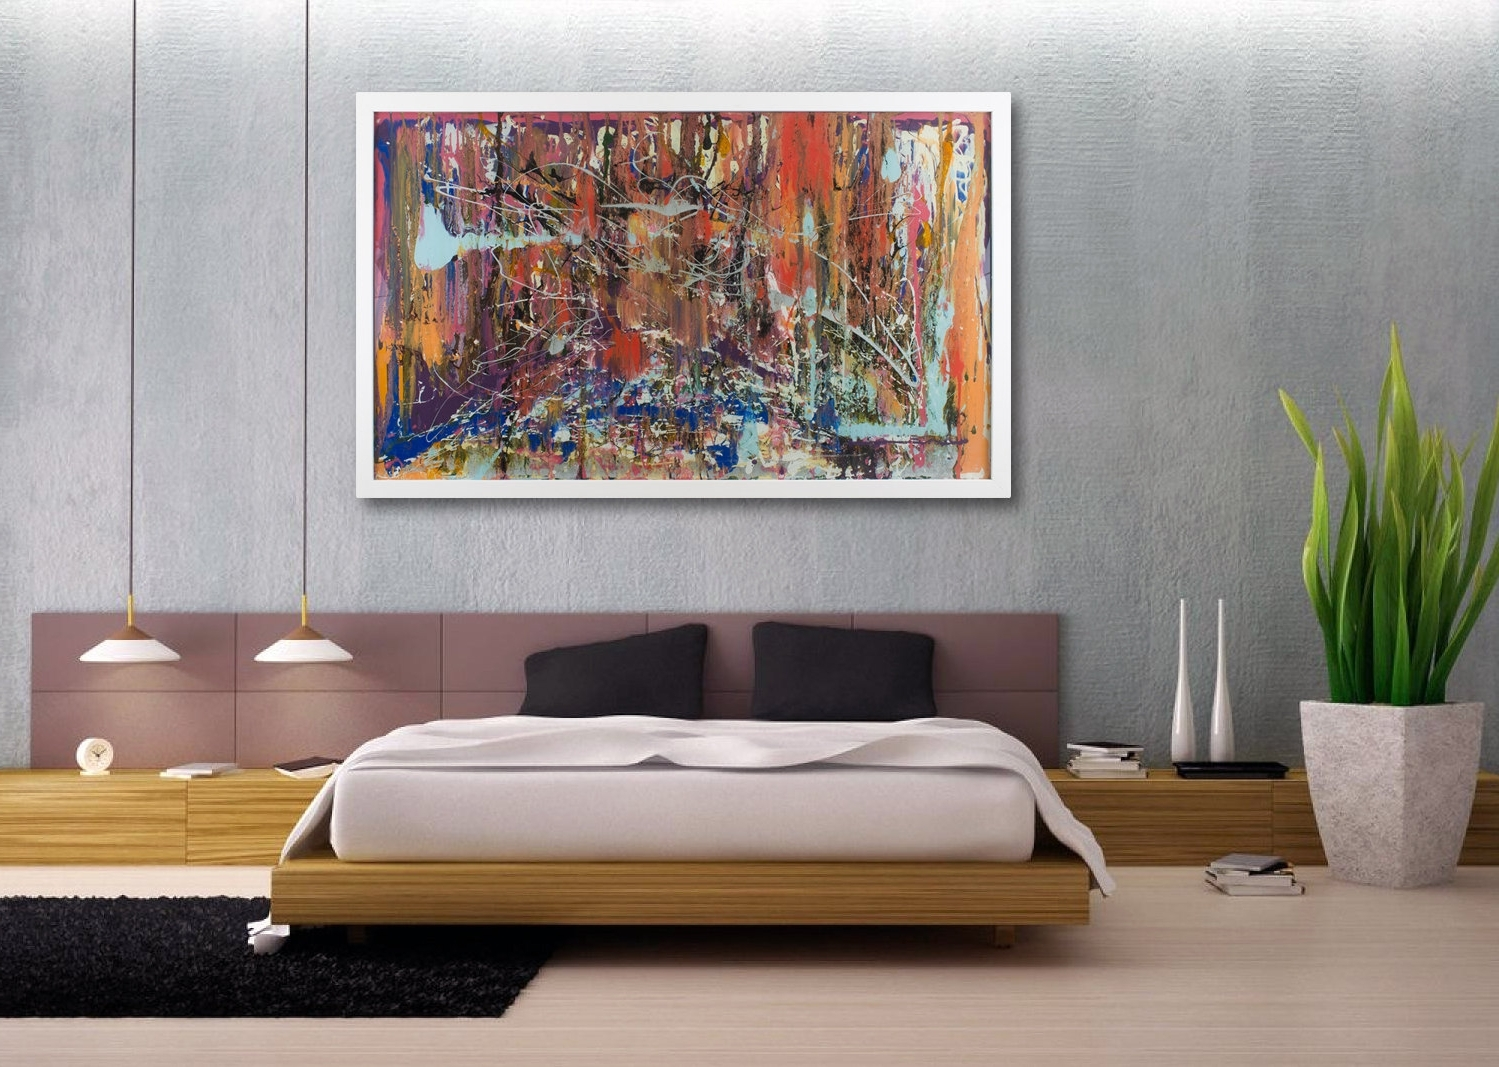 Large Modern Wall Art 15 Best Large Framed Abstract Wall Art